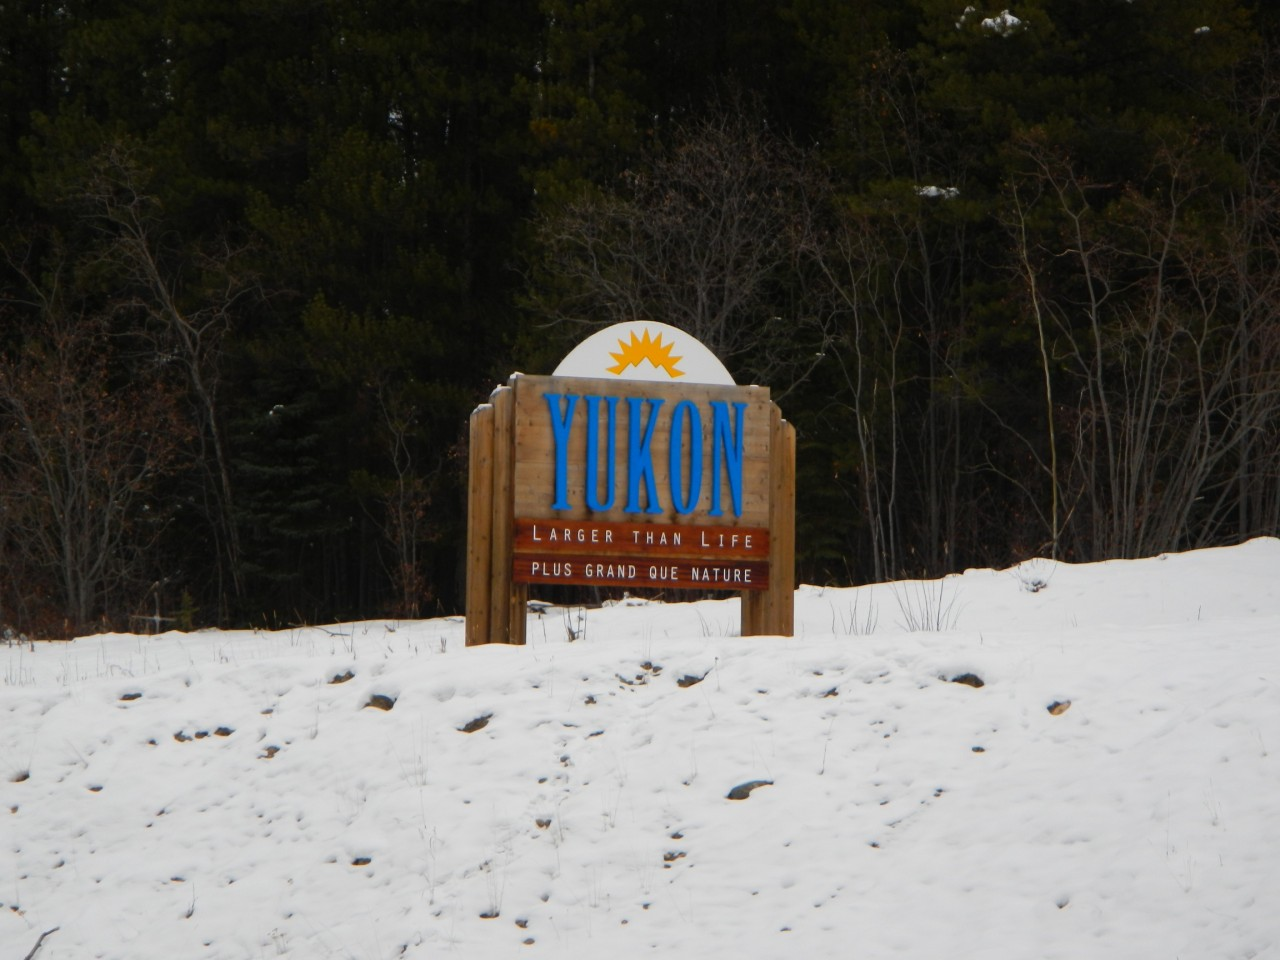 Entering Yukon Territory Sign